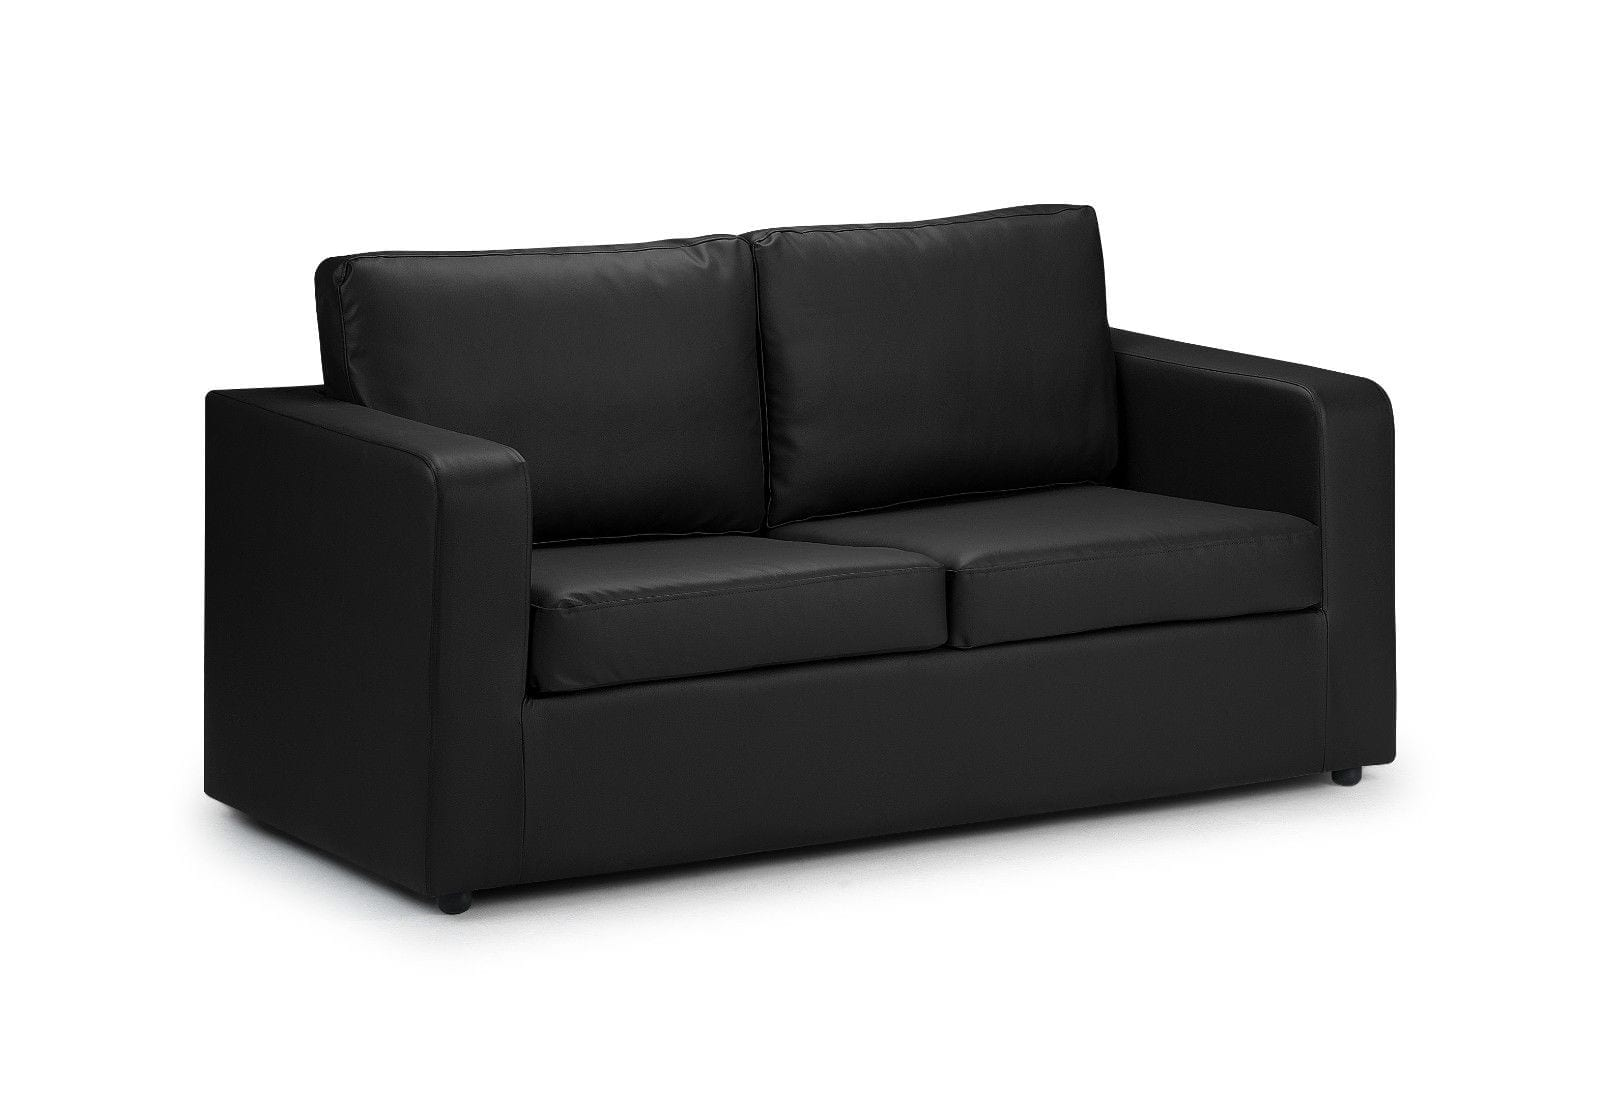 leather sofas swansea enterprise park chester sofa furniture packs contract let us furnish maxi black bed